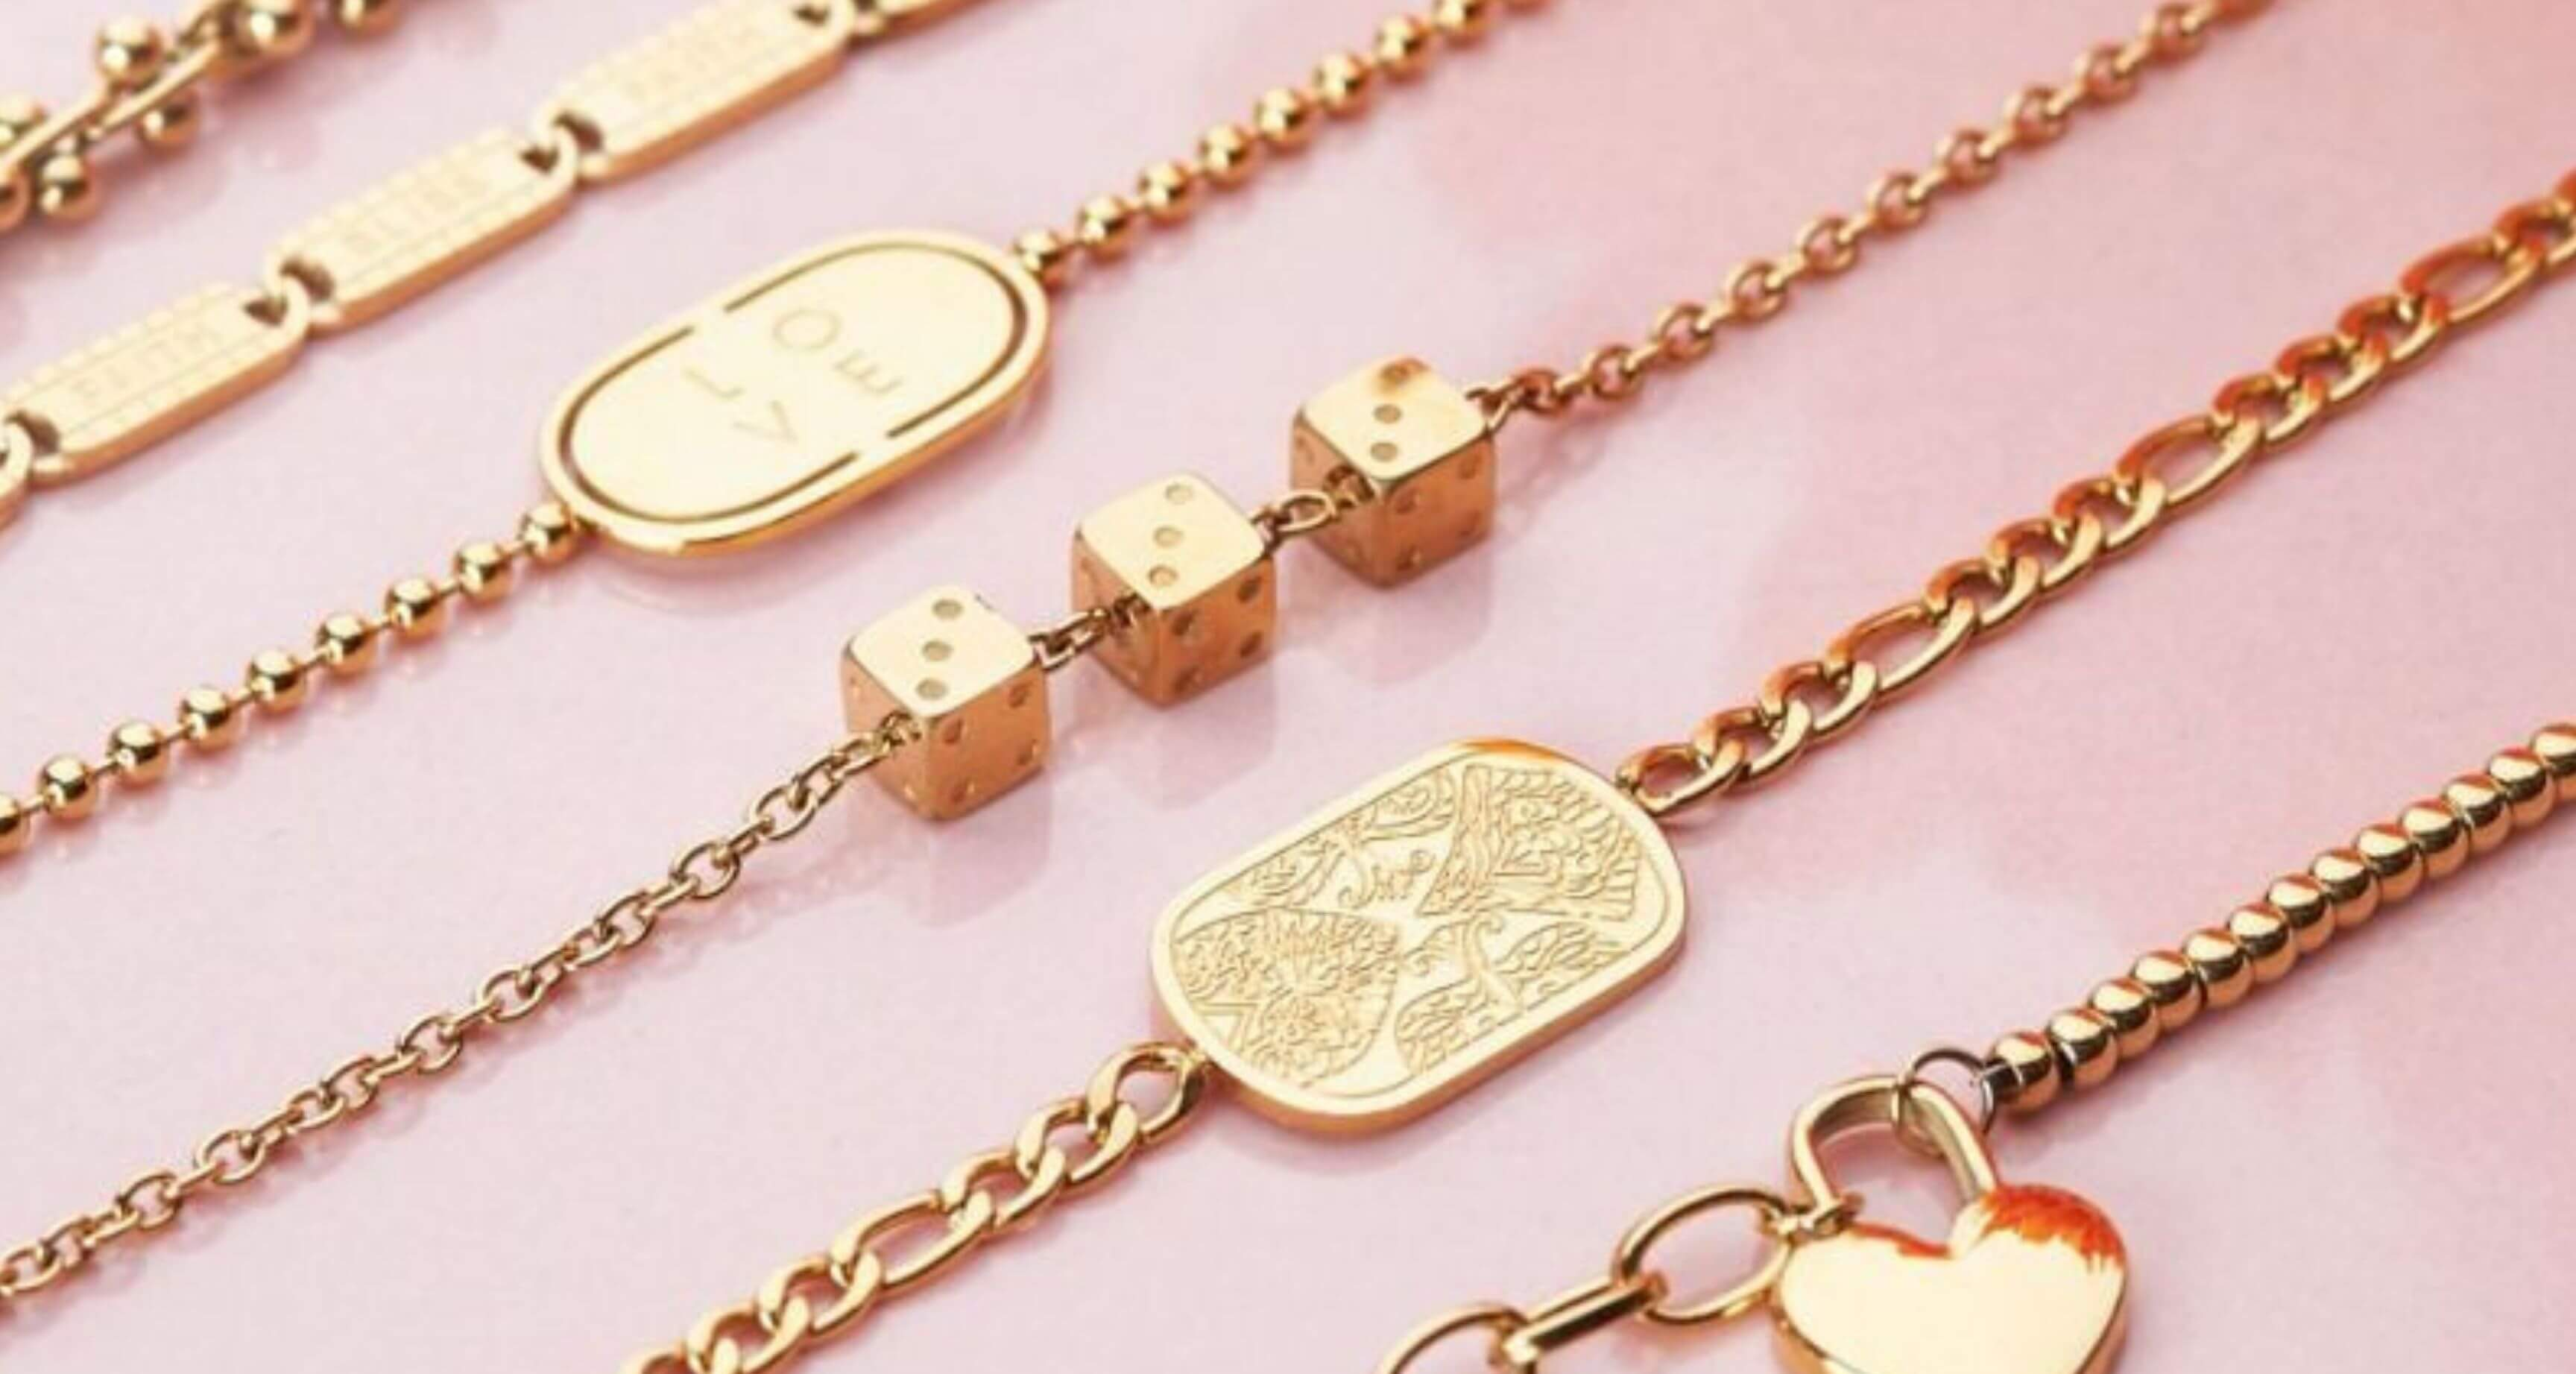 Examples of My Jewellery promotional gifts